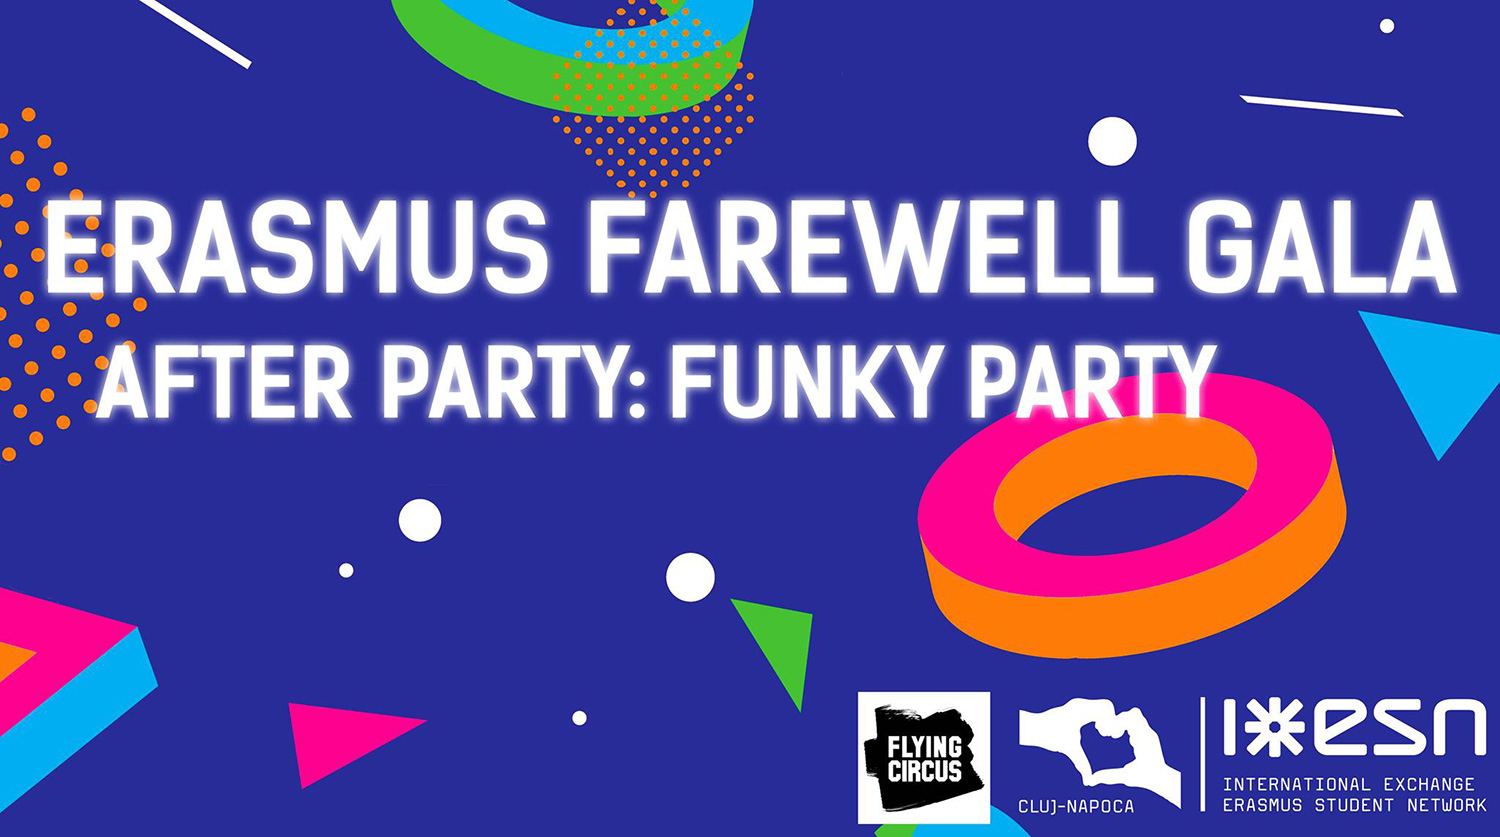 Erasmus Farewell Gala - Funky (After) Party